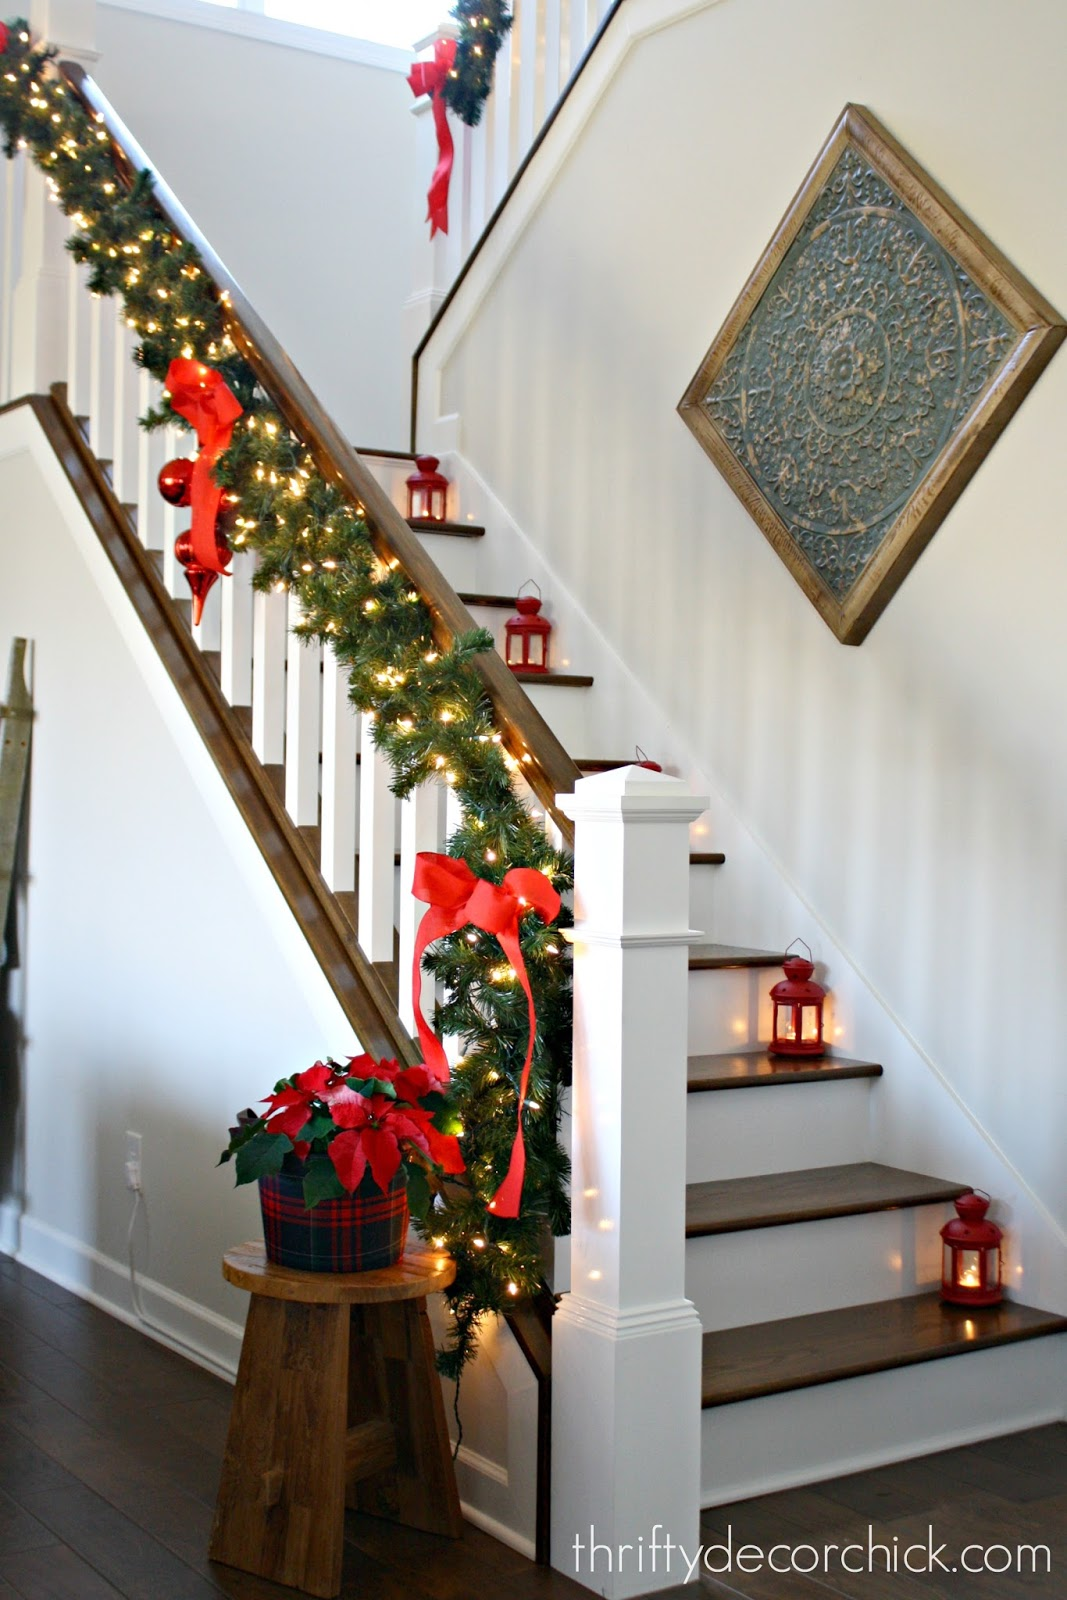 Our Christmas staircase! from Thrifty Decor Chick